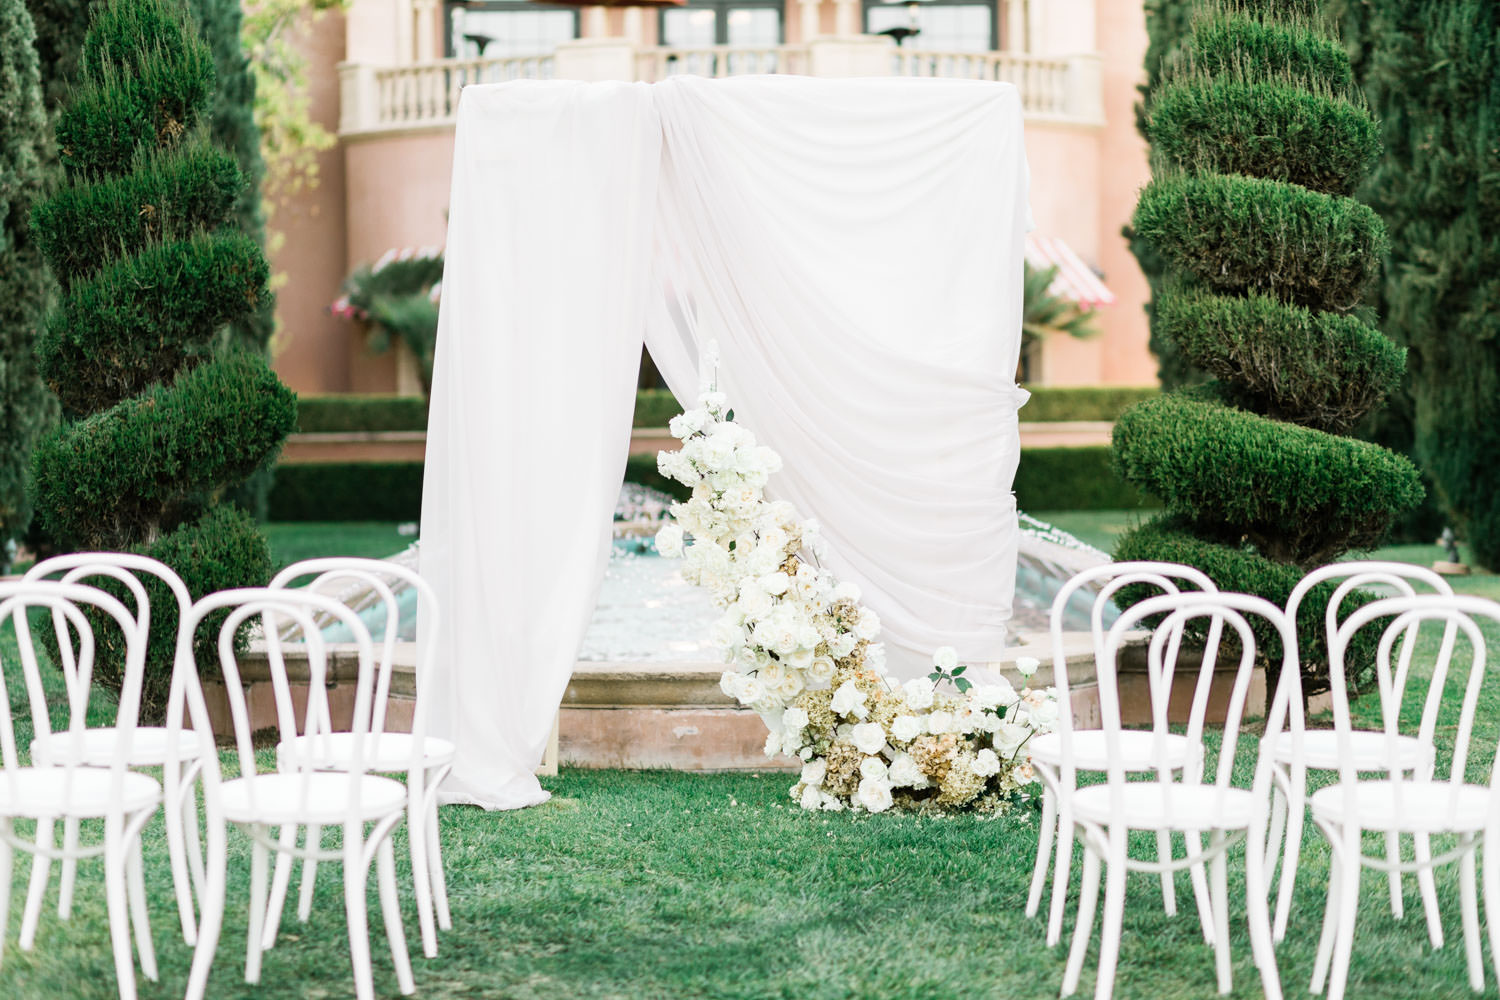 Grand del Mar wedding ceremony on reflection lawn, Cavin Elizabeth Photography